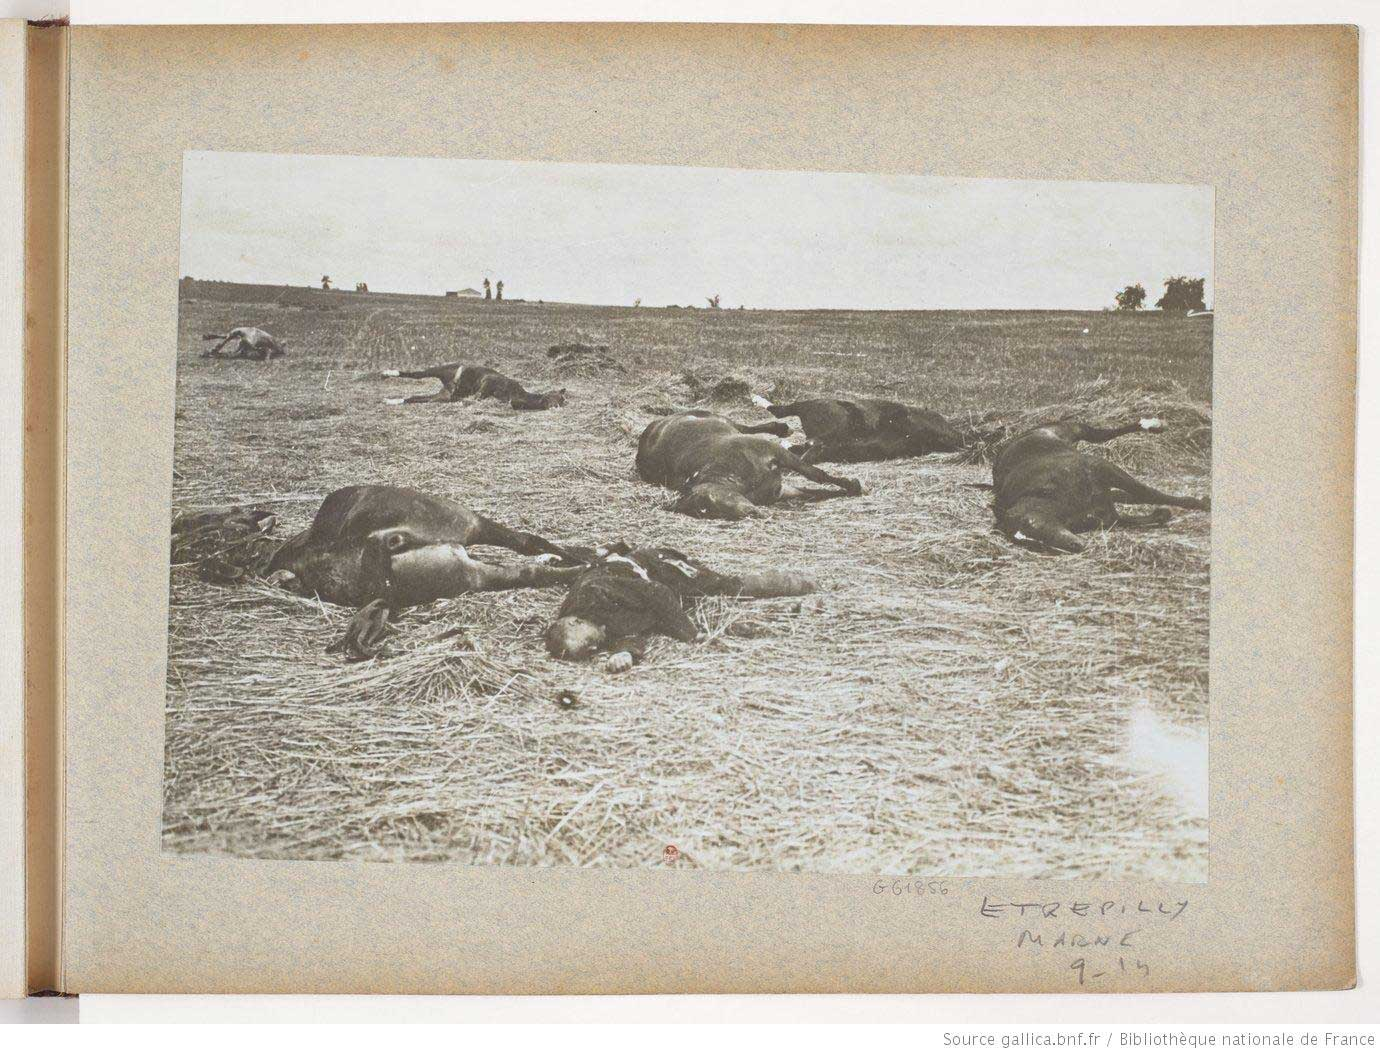 Battlefield at Etrepilly, Marne